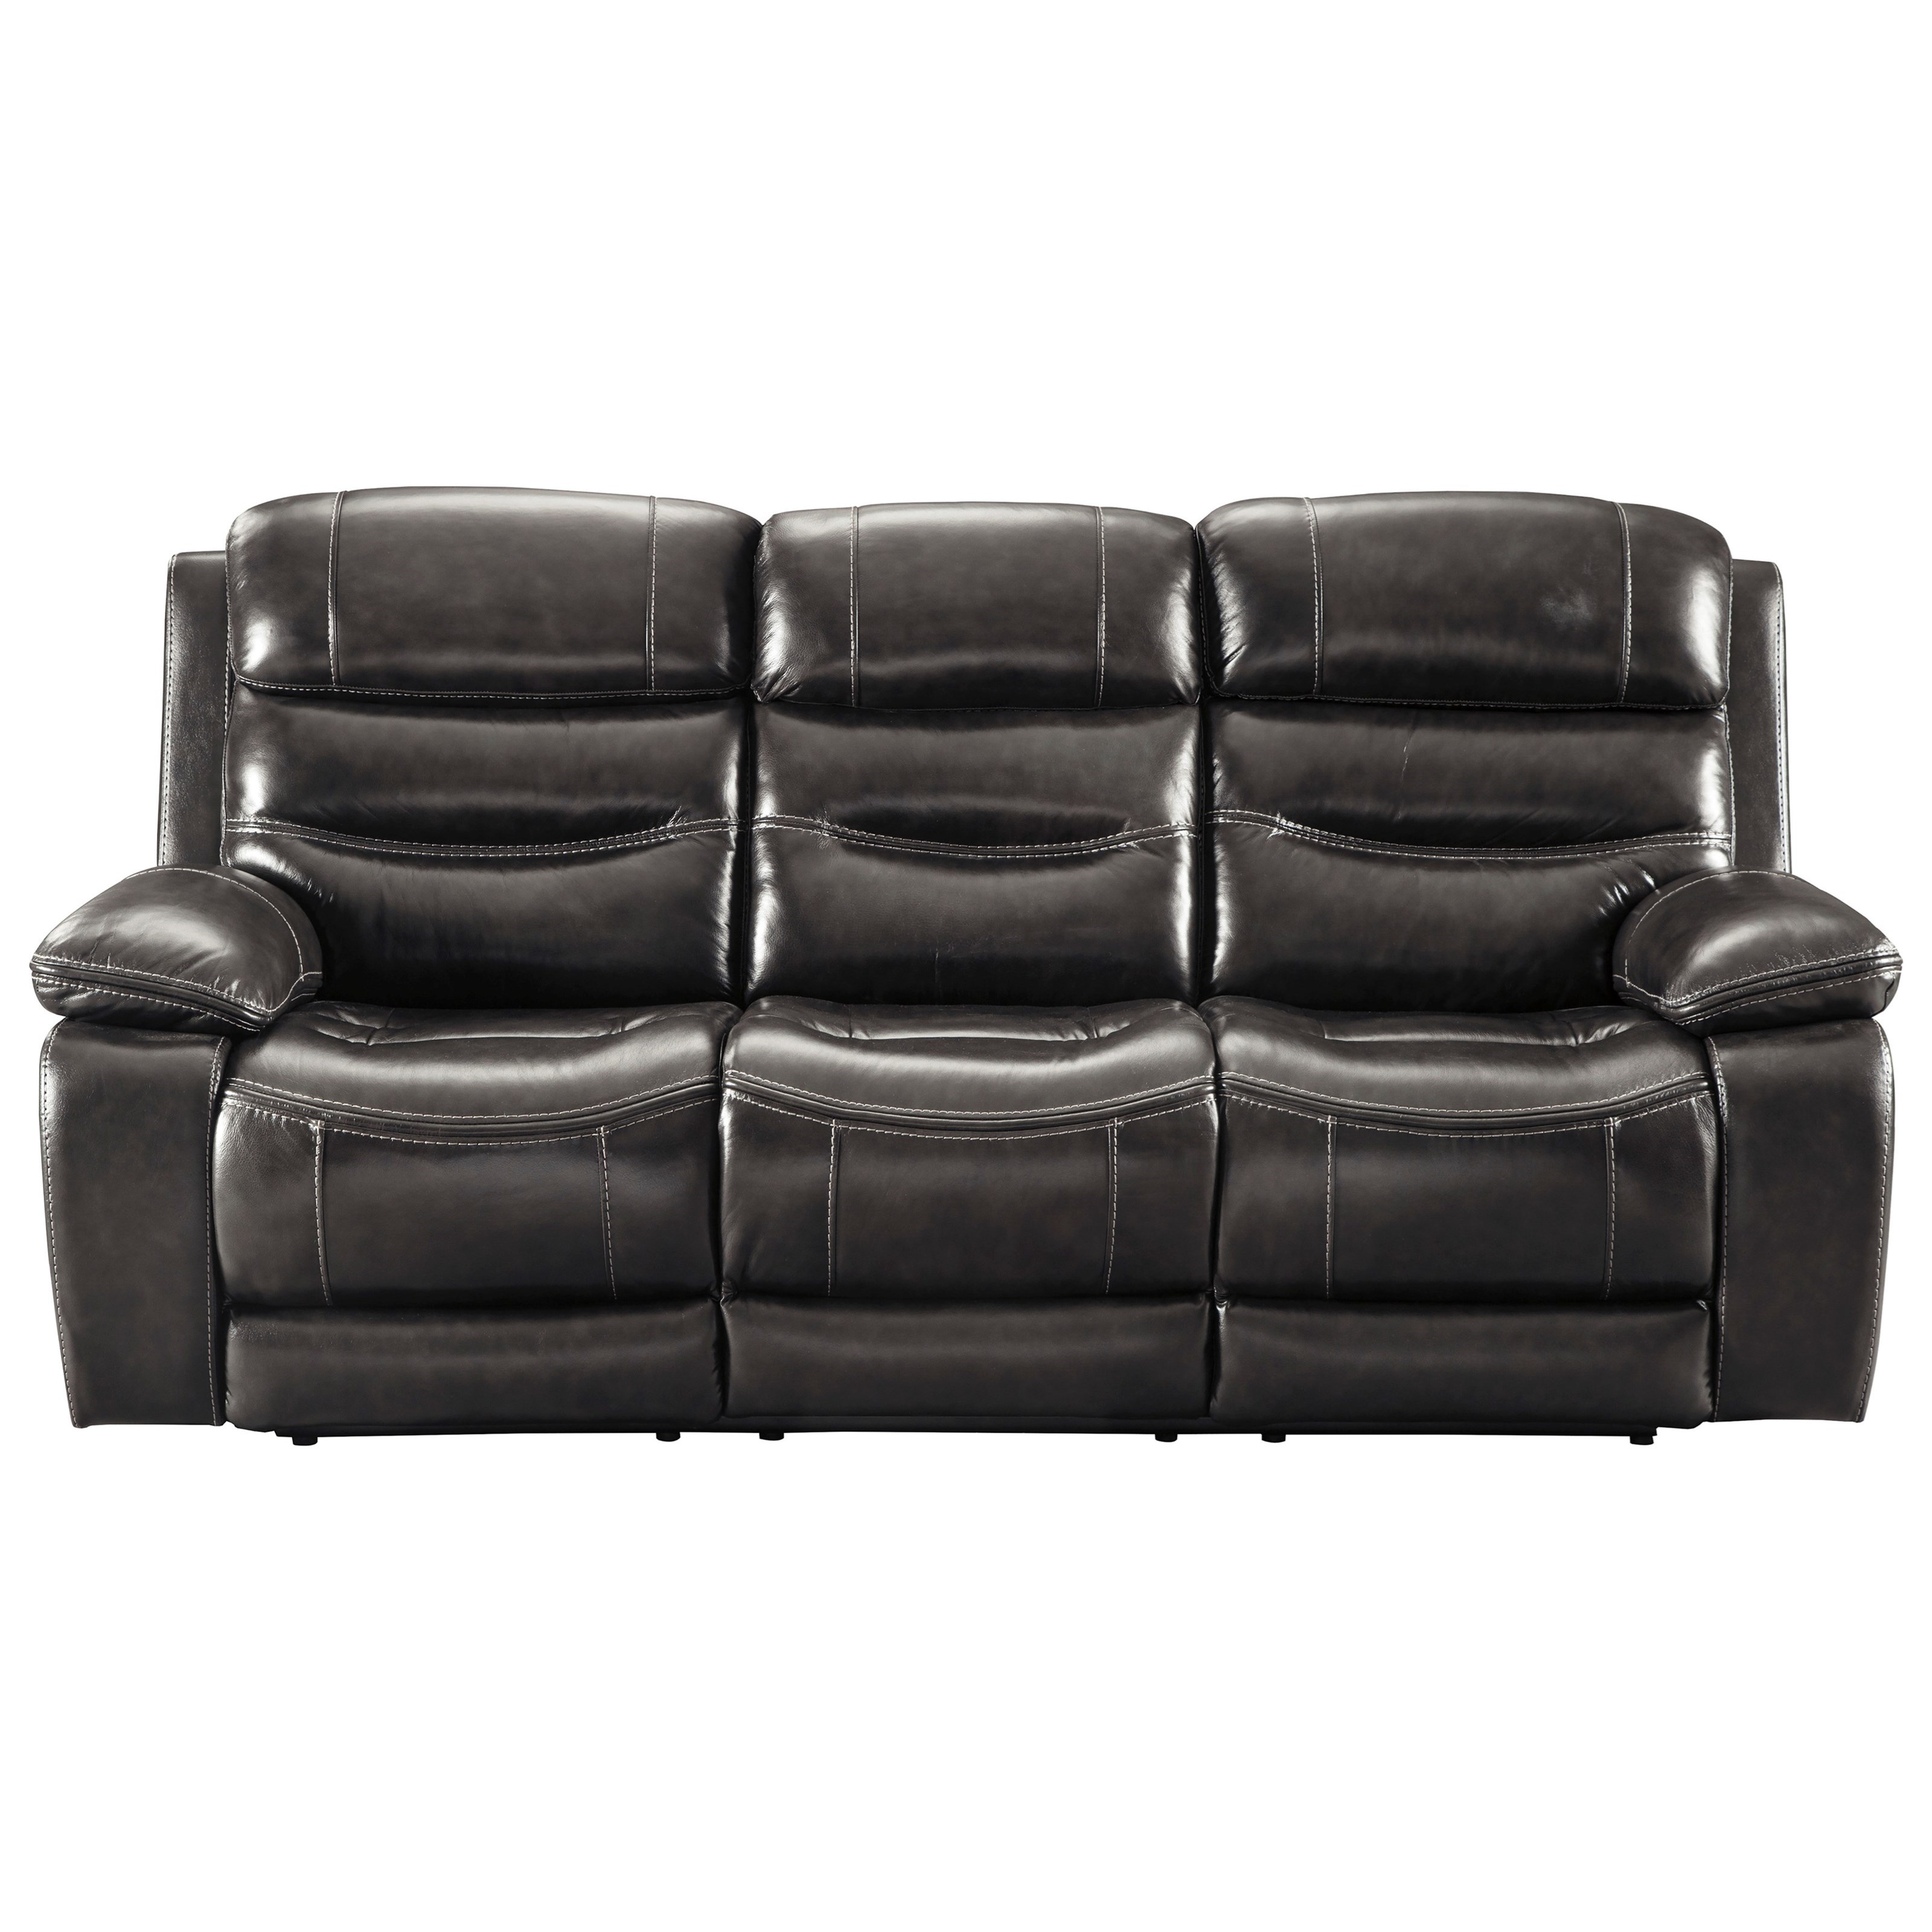 Beau Benchcraft By Ashley Pillement Power Reclining Sofa W/ Adjustable Headrests    Item Number: 7700415